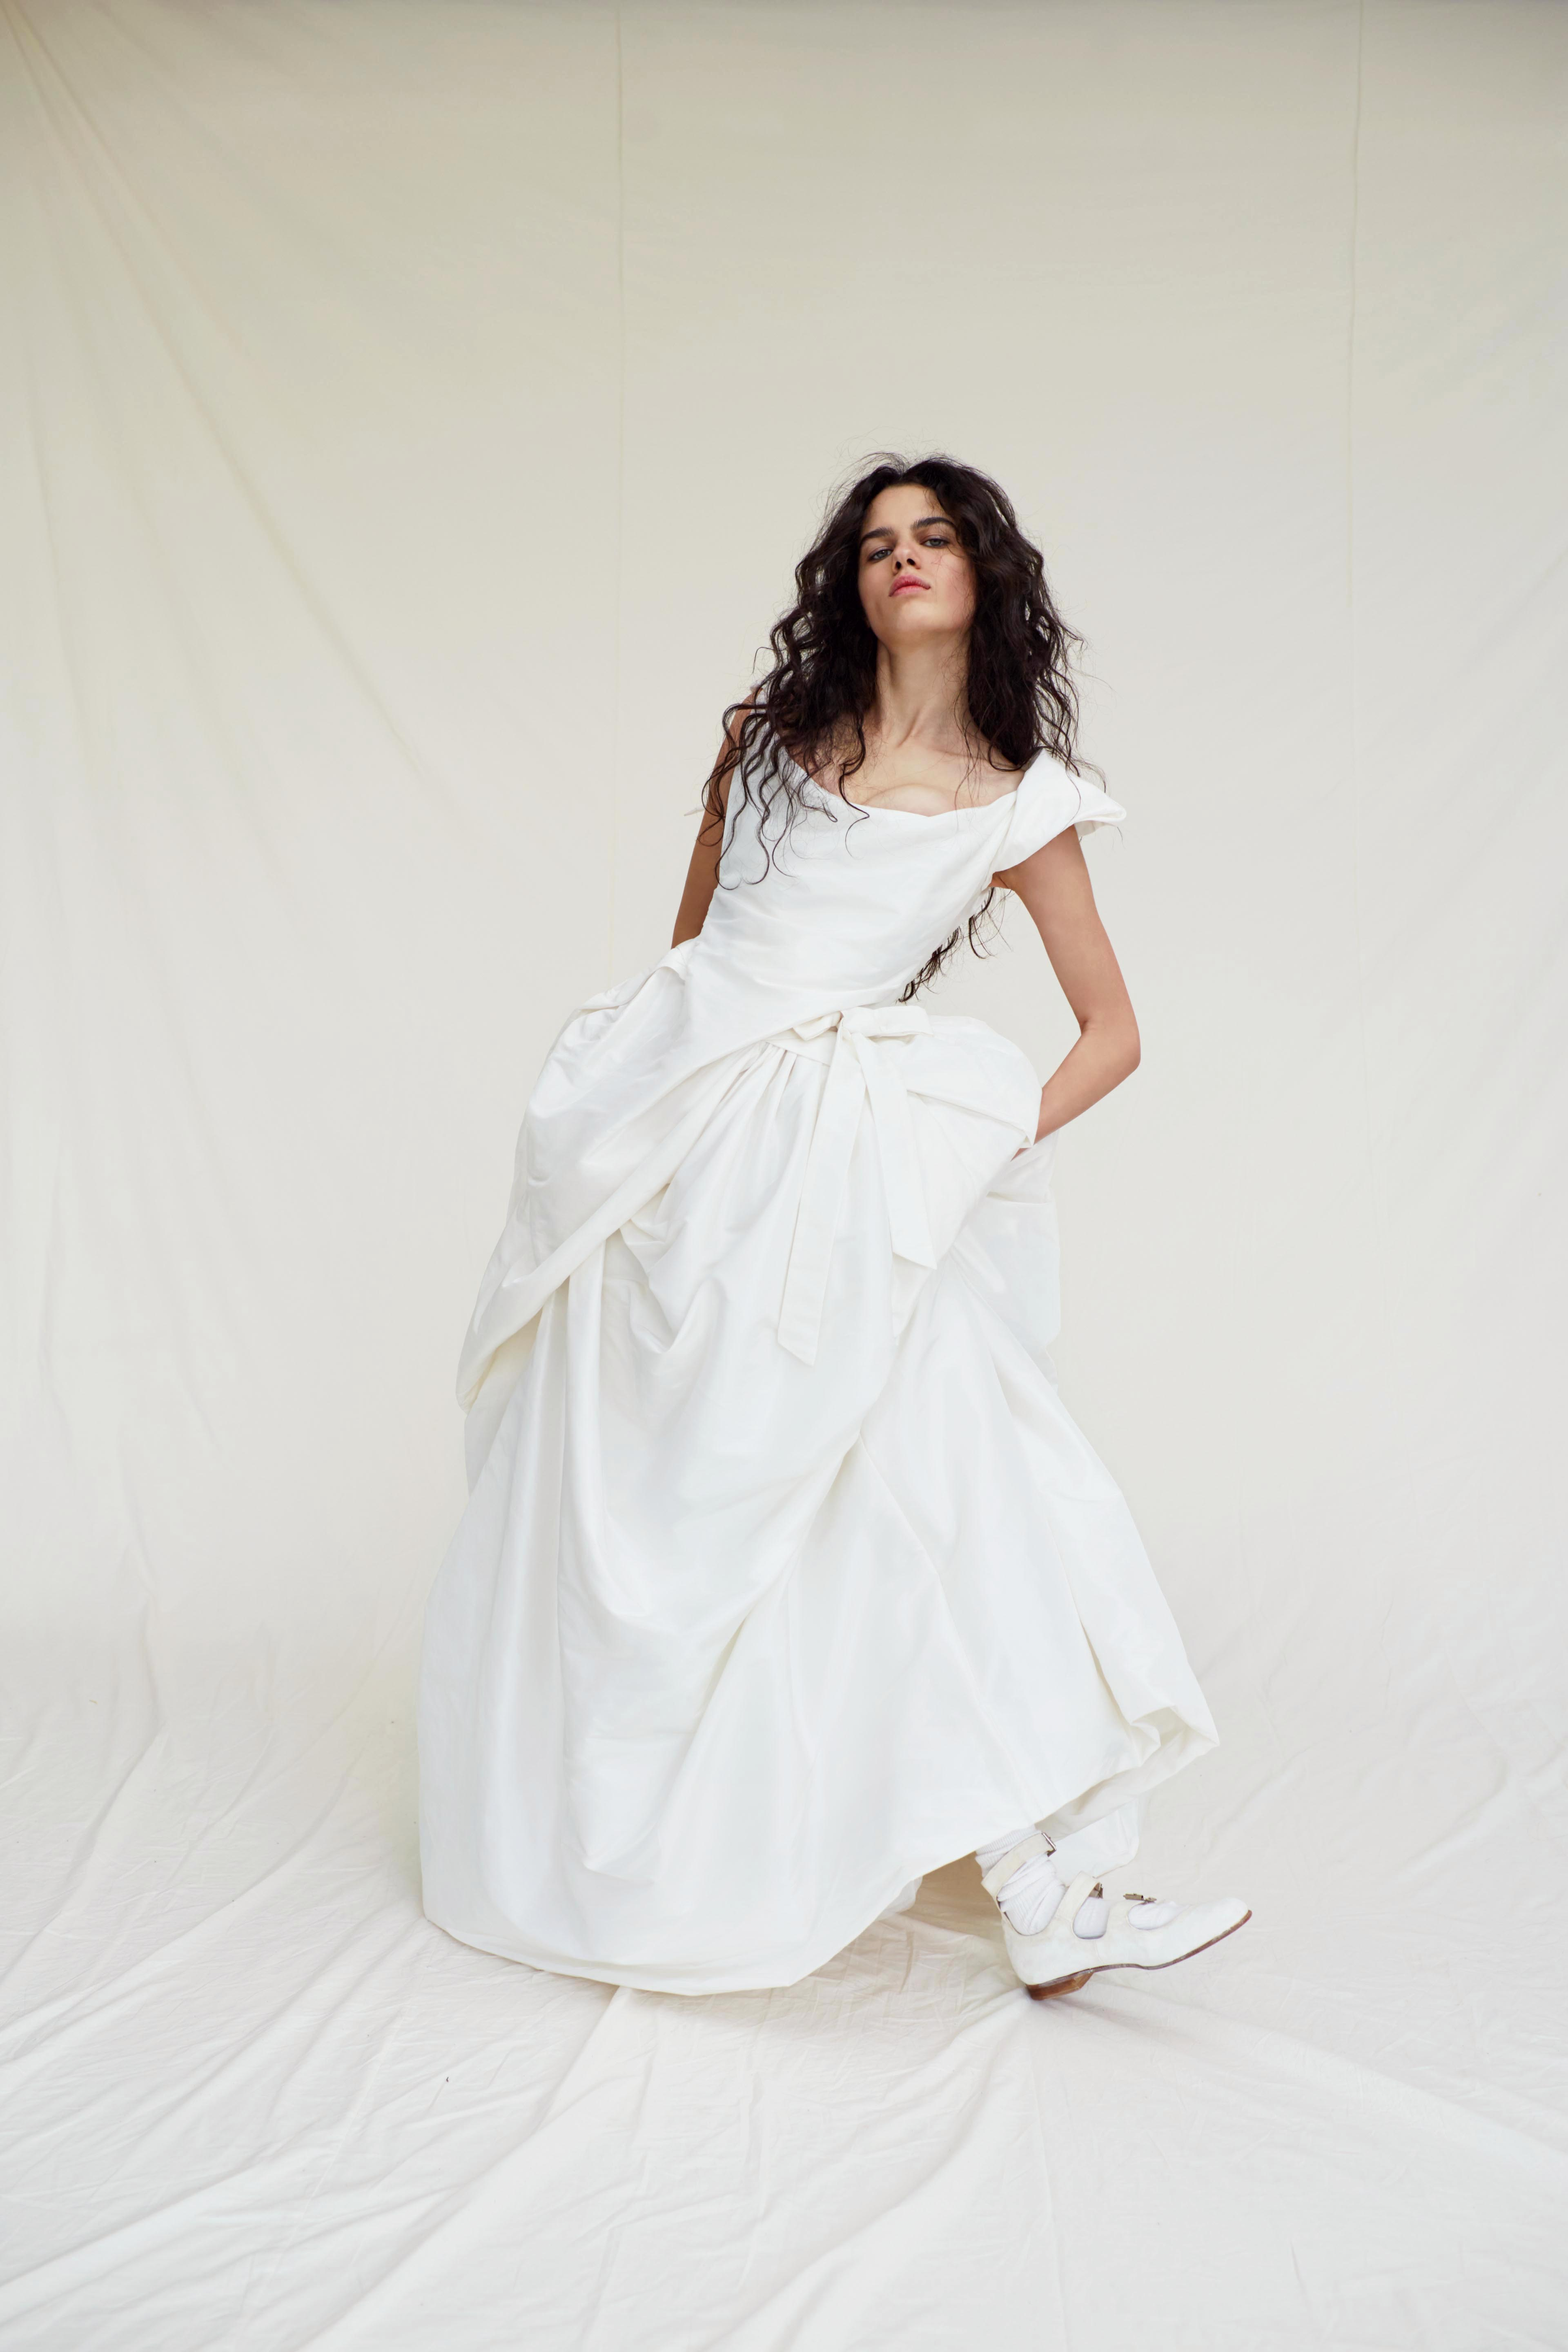 vivienne westwood wedding dress Spring 2019 scoop neck a-line